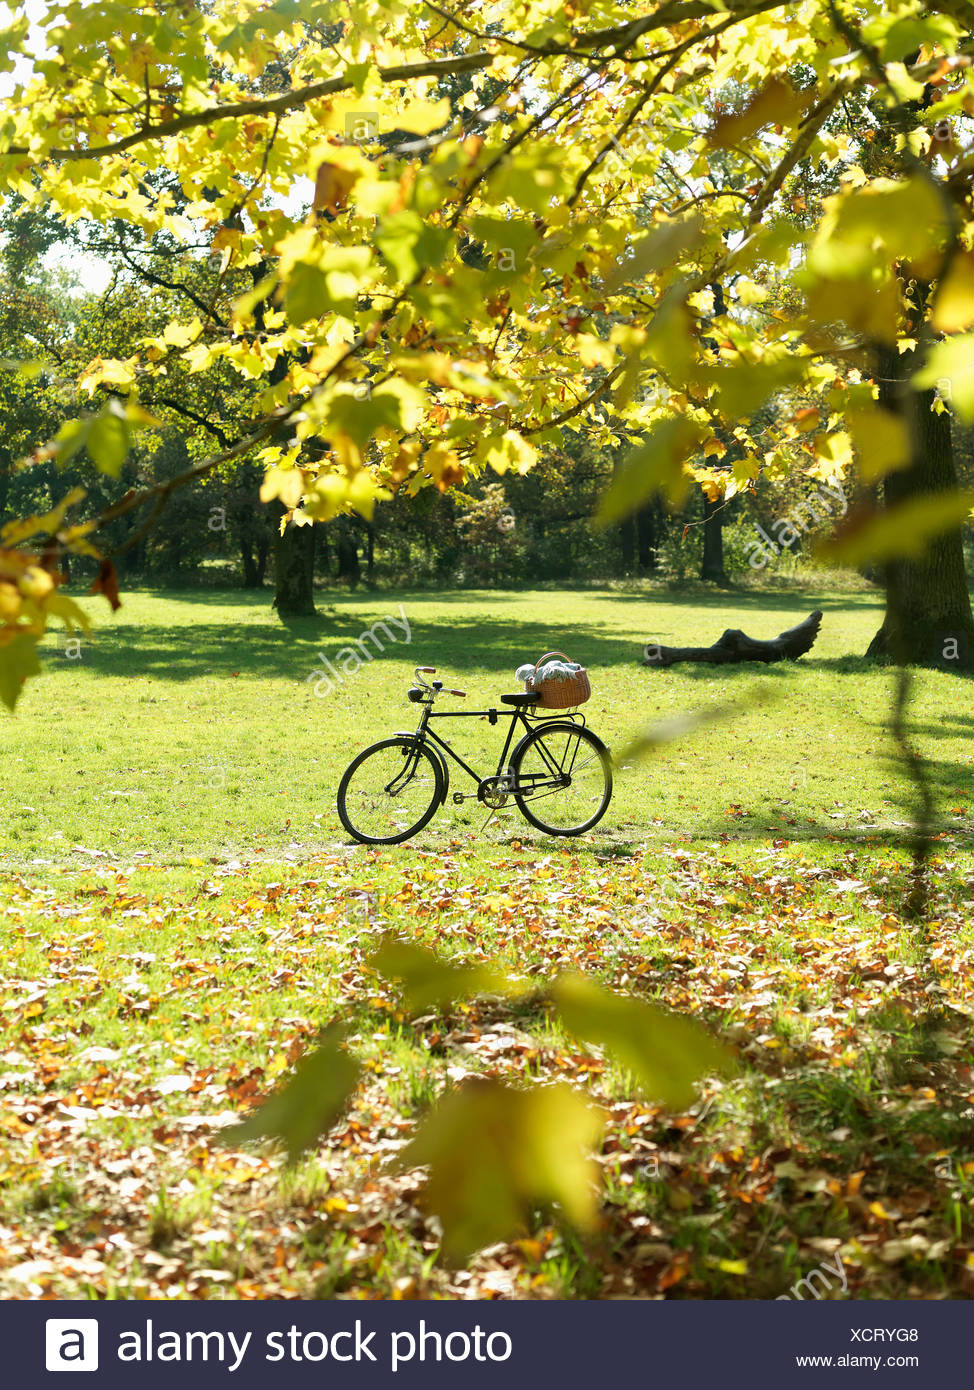 Bicycle left in Autumn field with leaves - Stock Image